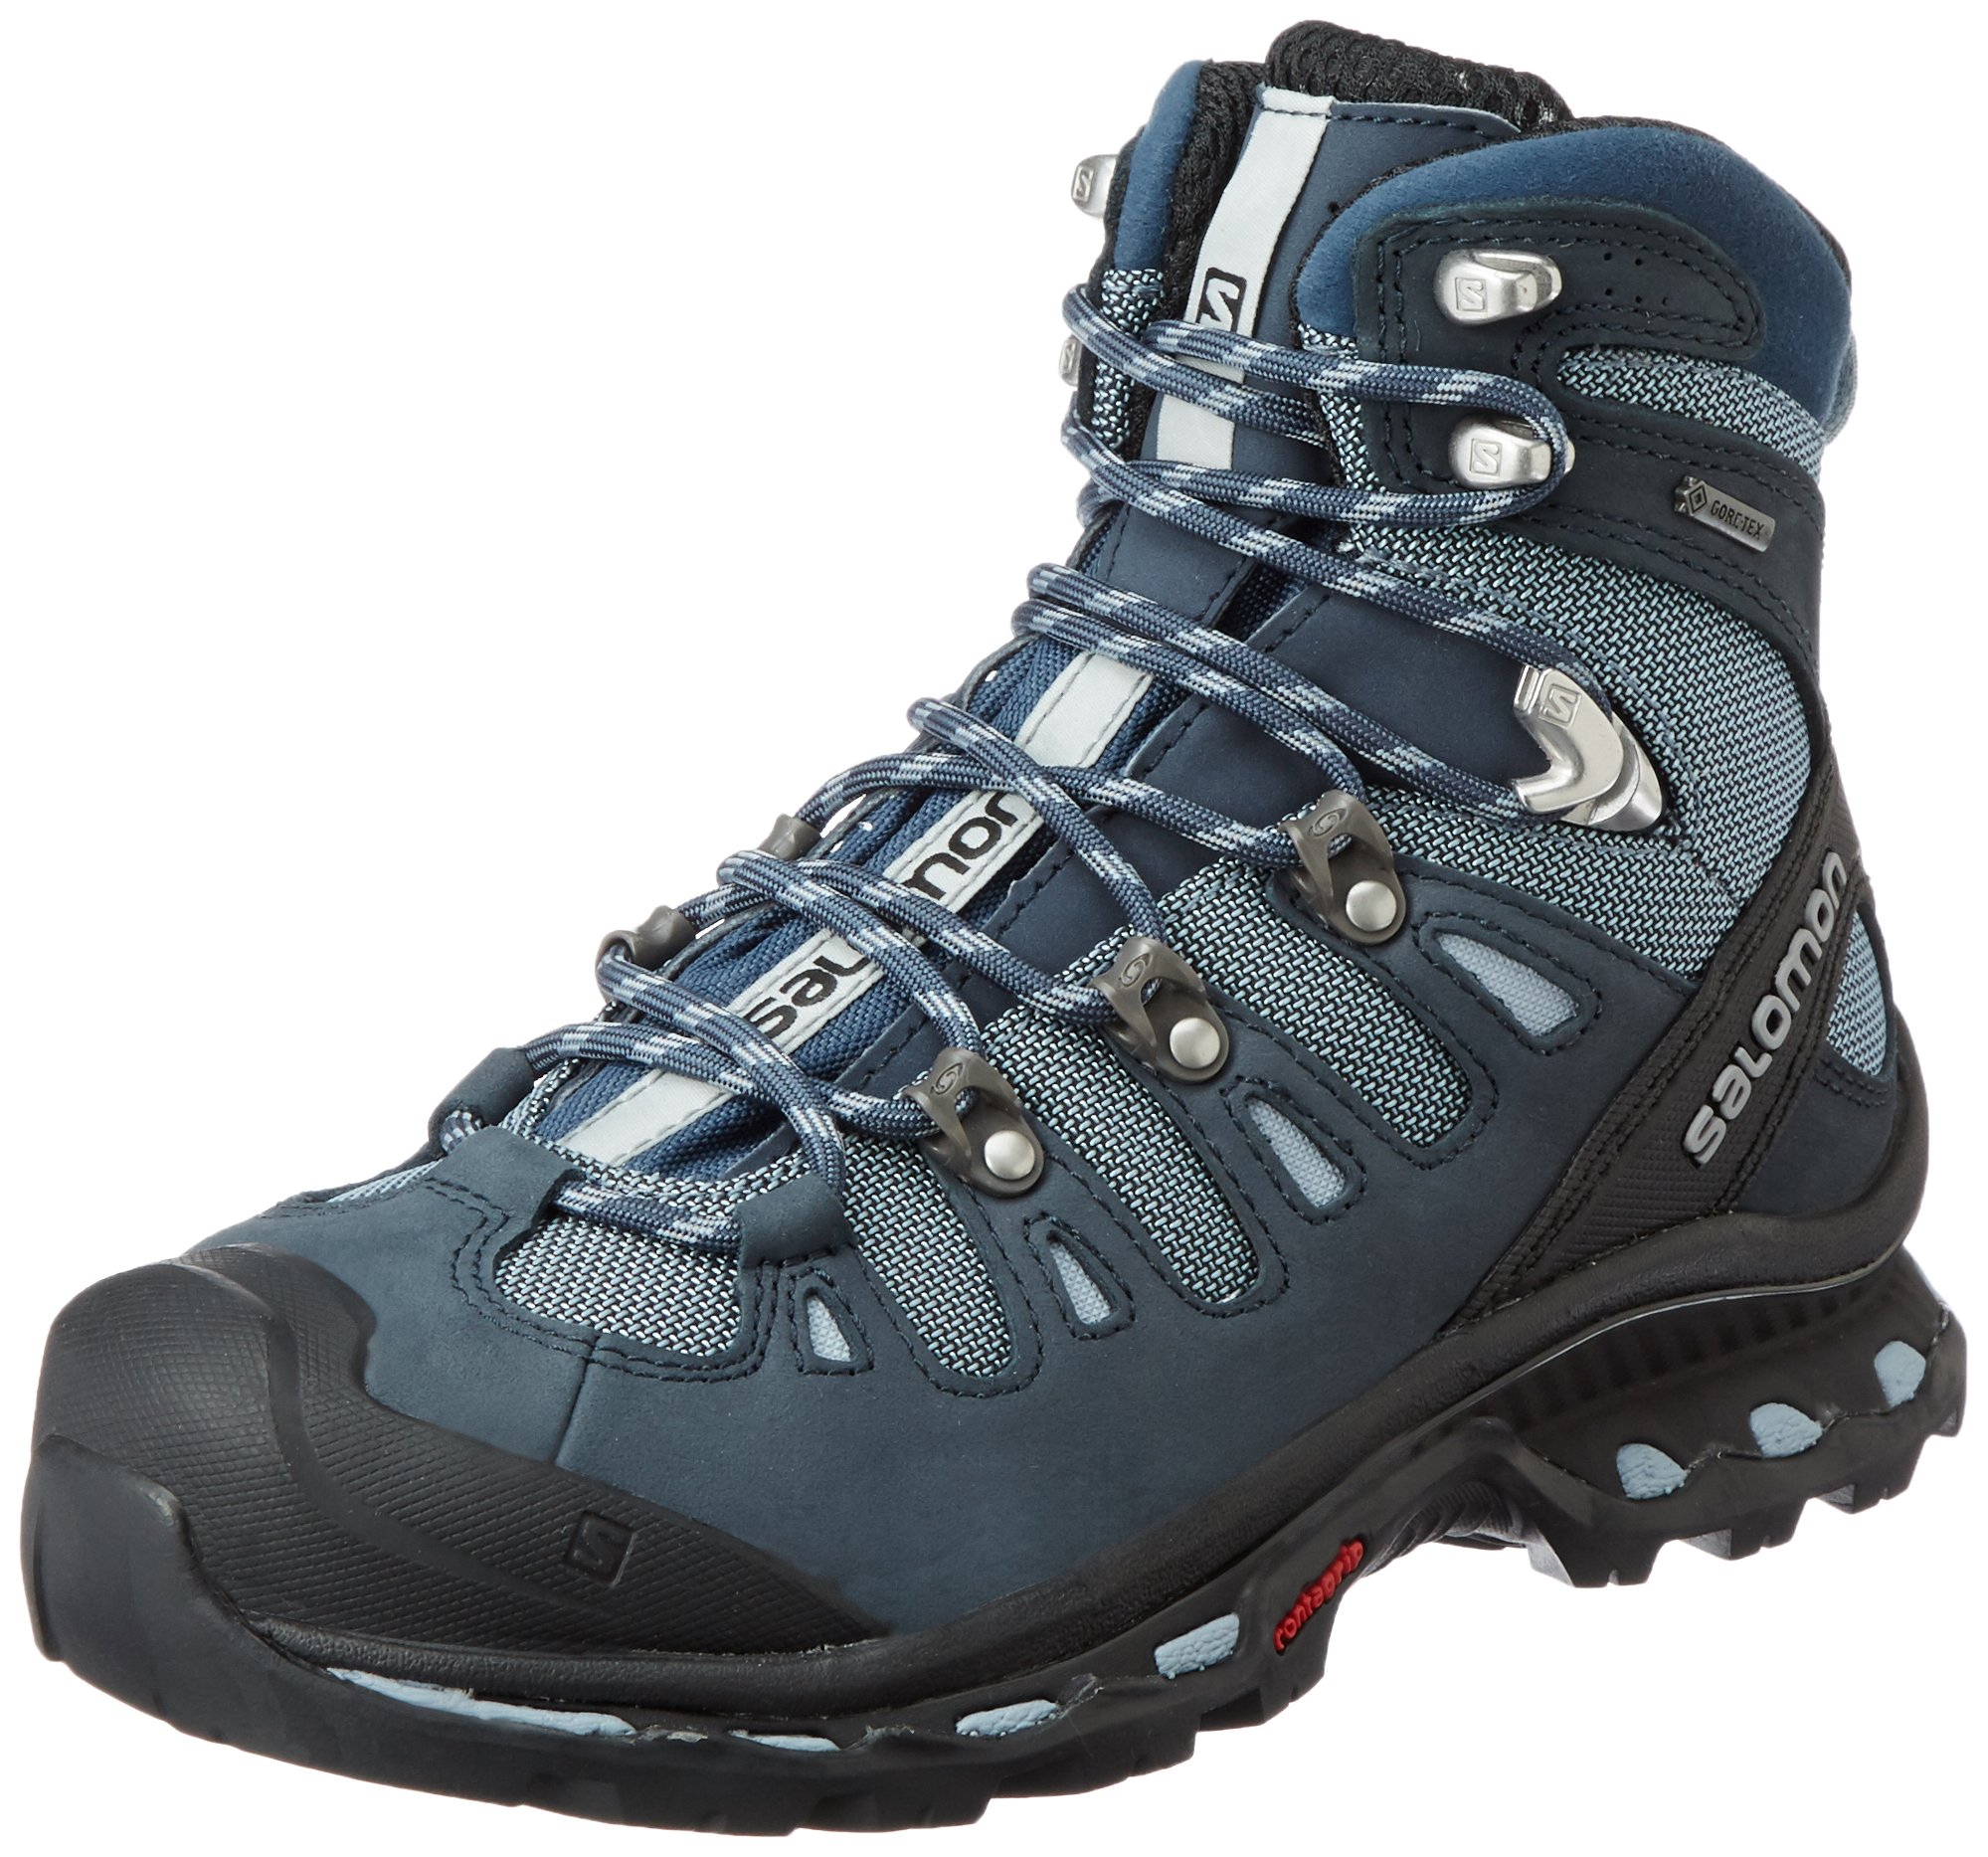 Salomon Women's Quest 4D 2 Gtx W Backpacking Boot, Deep Blue/Stone Blue/Light Onix, 5 M US